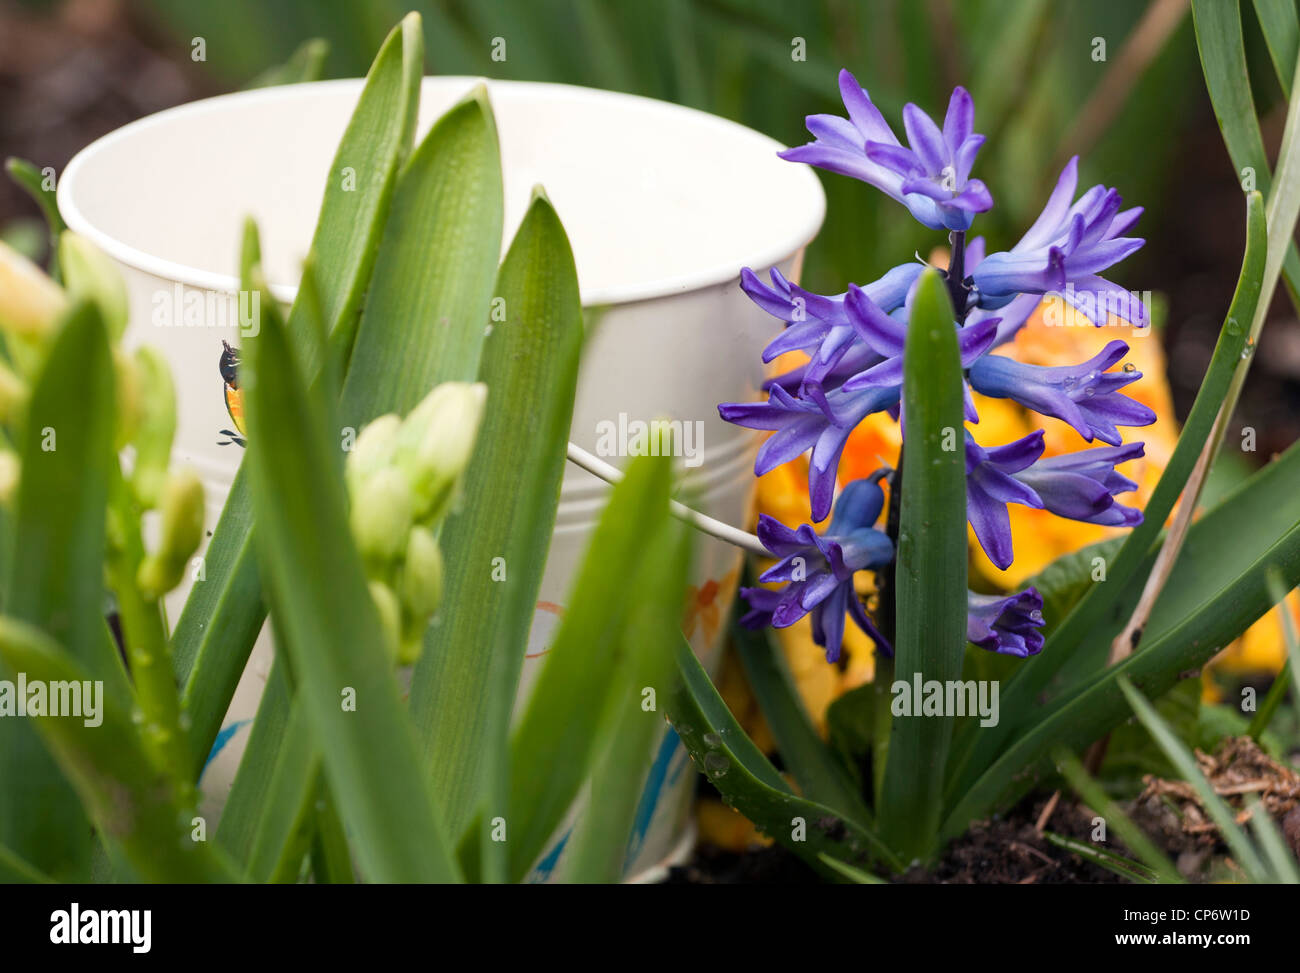 Blooming Spring Flowers With Small White Bucket Stock Photo